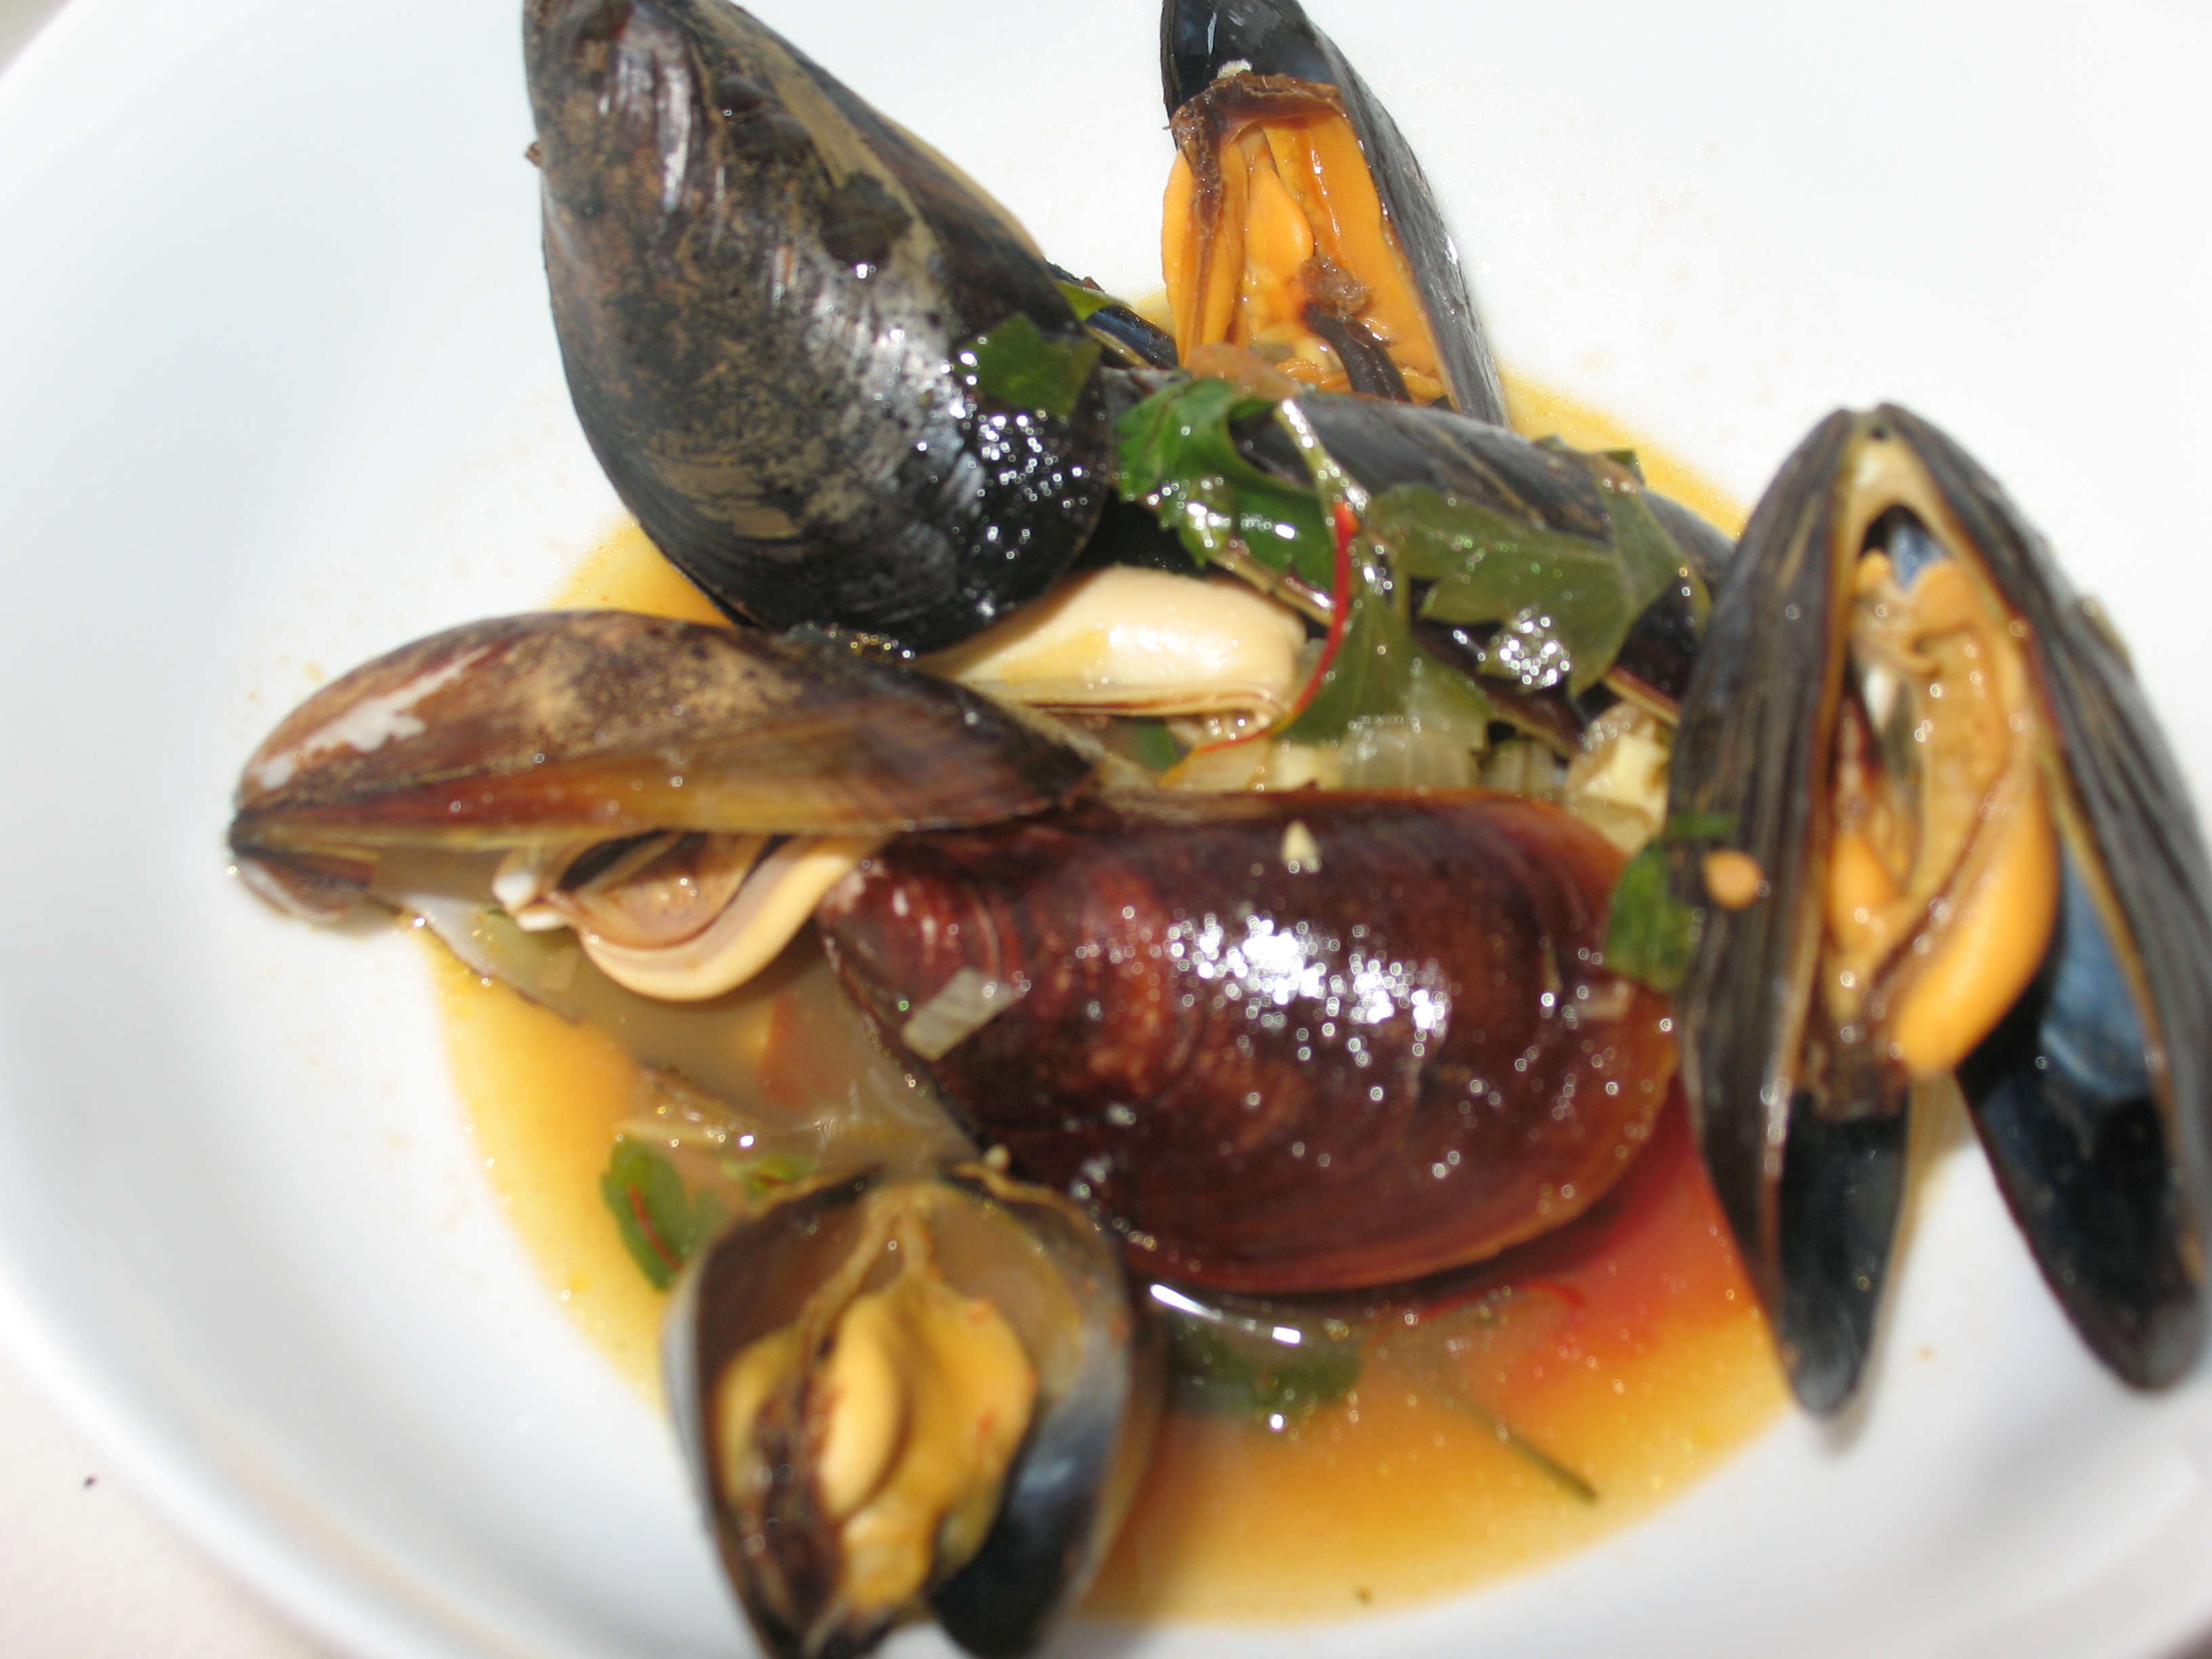 Mussels steamed in white wine and adventures with saffron